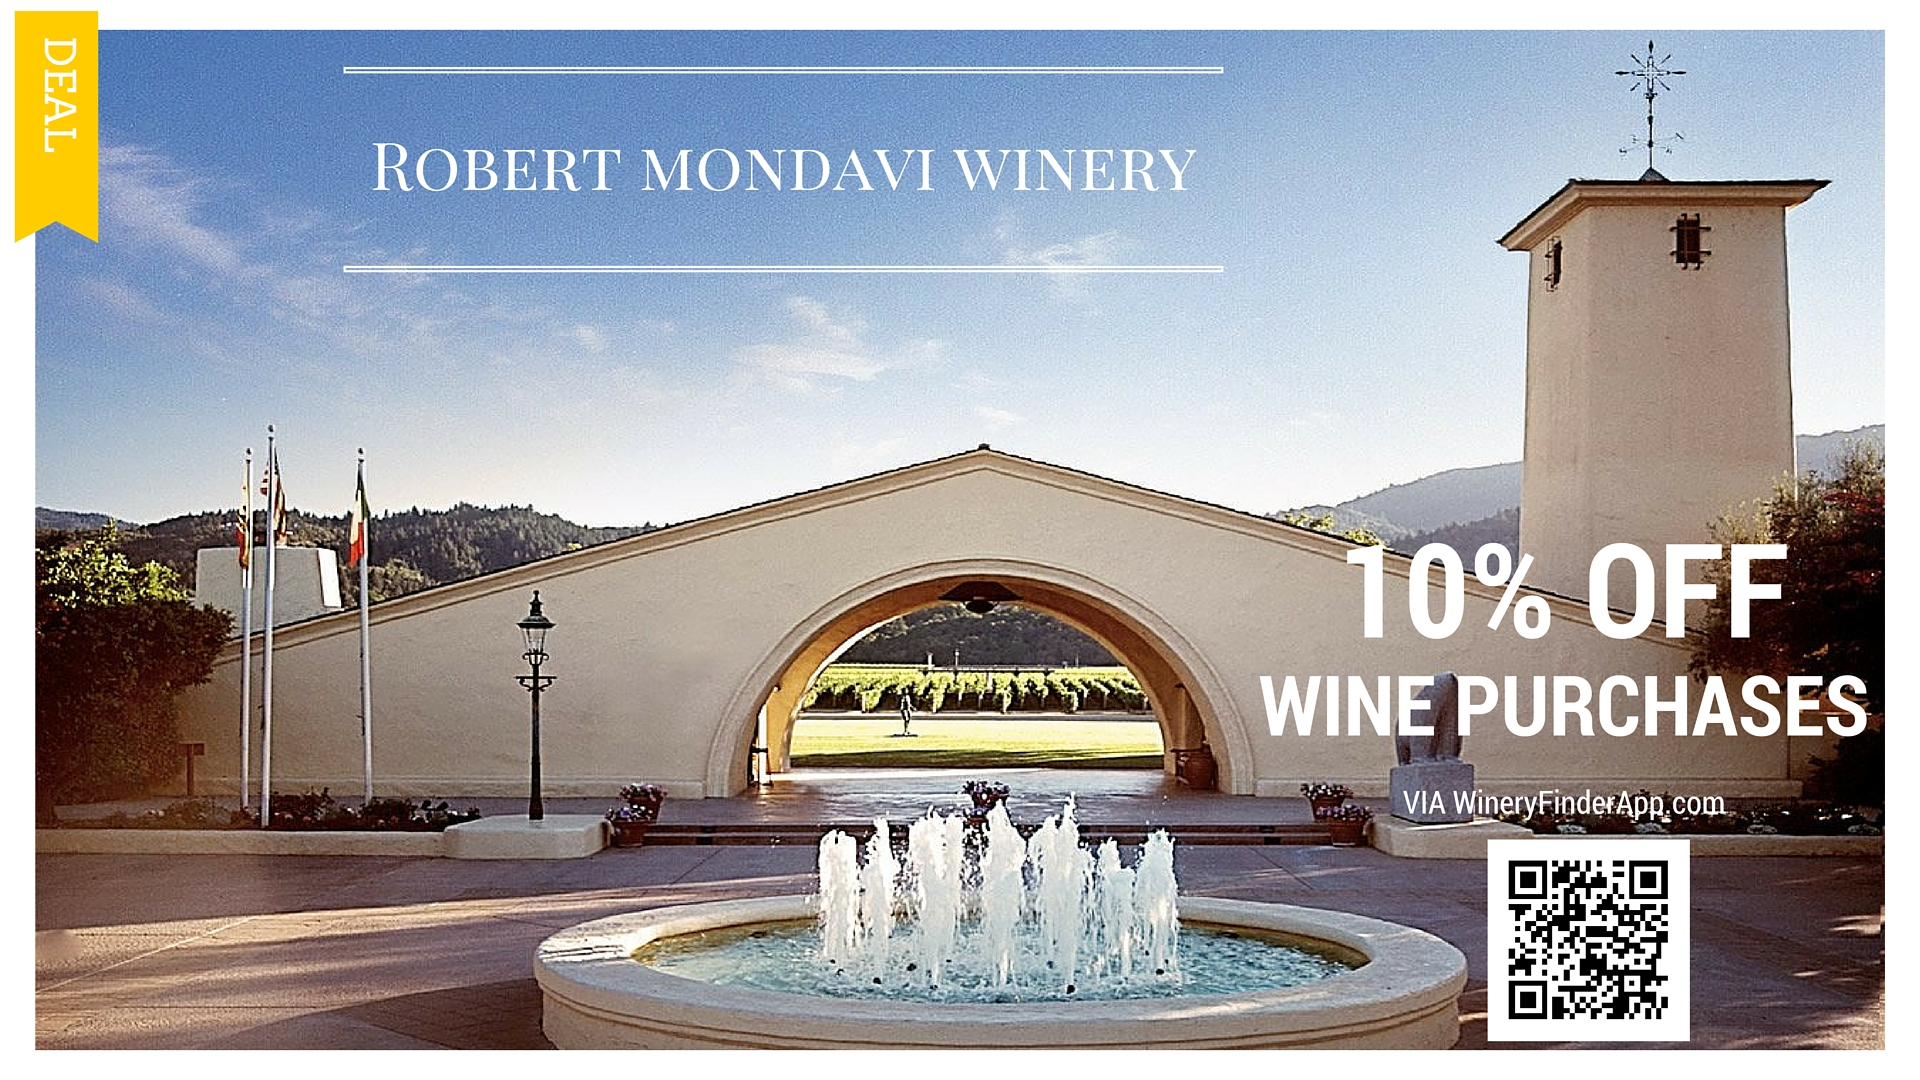 Robert mondavi winery Coupon NEW